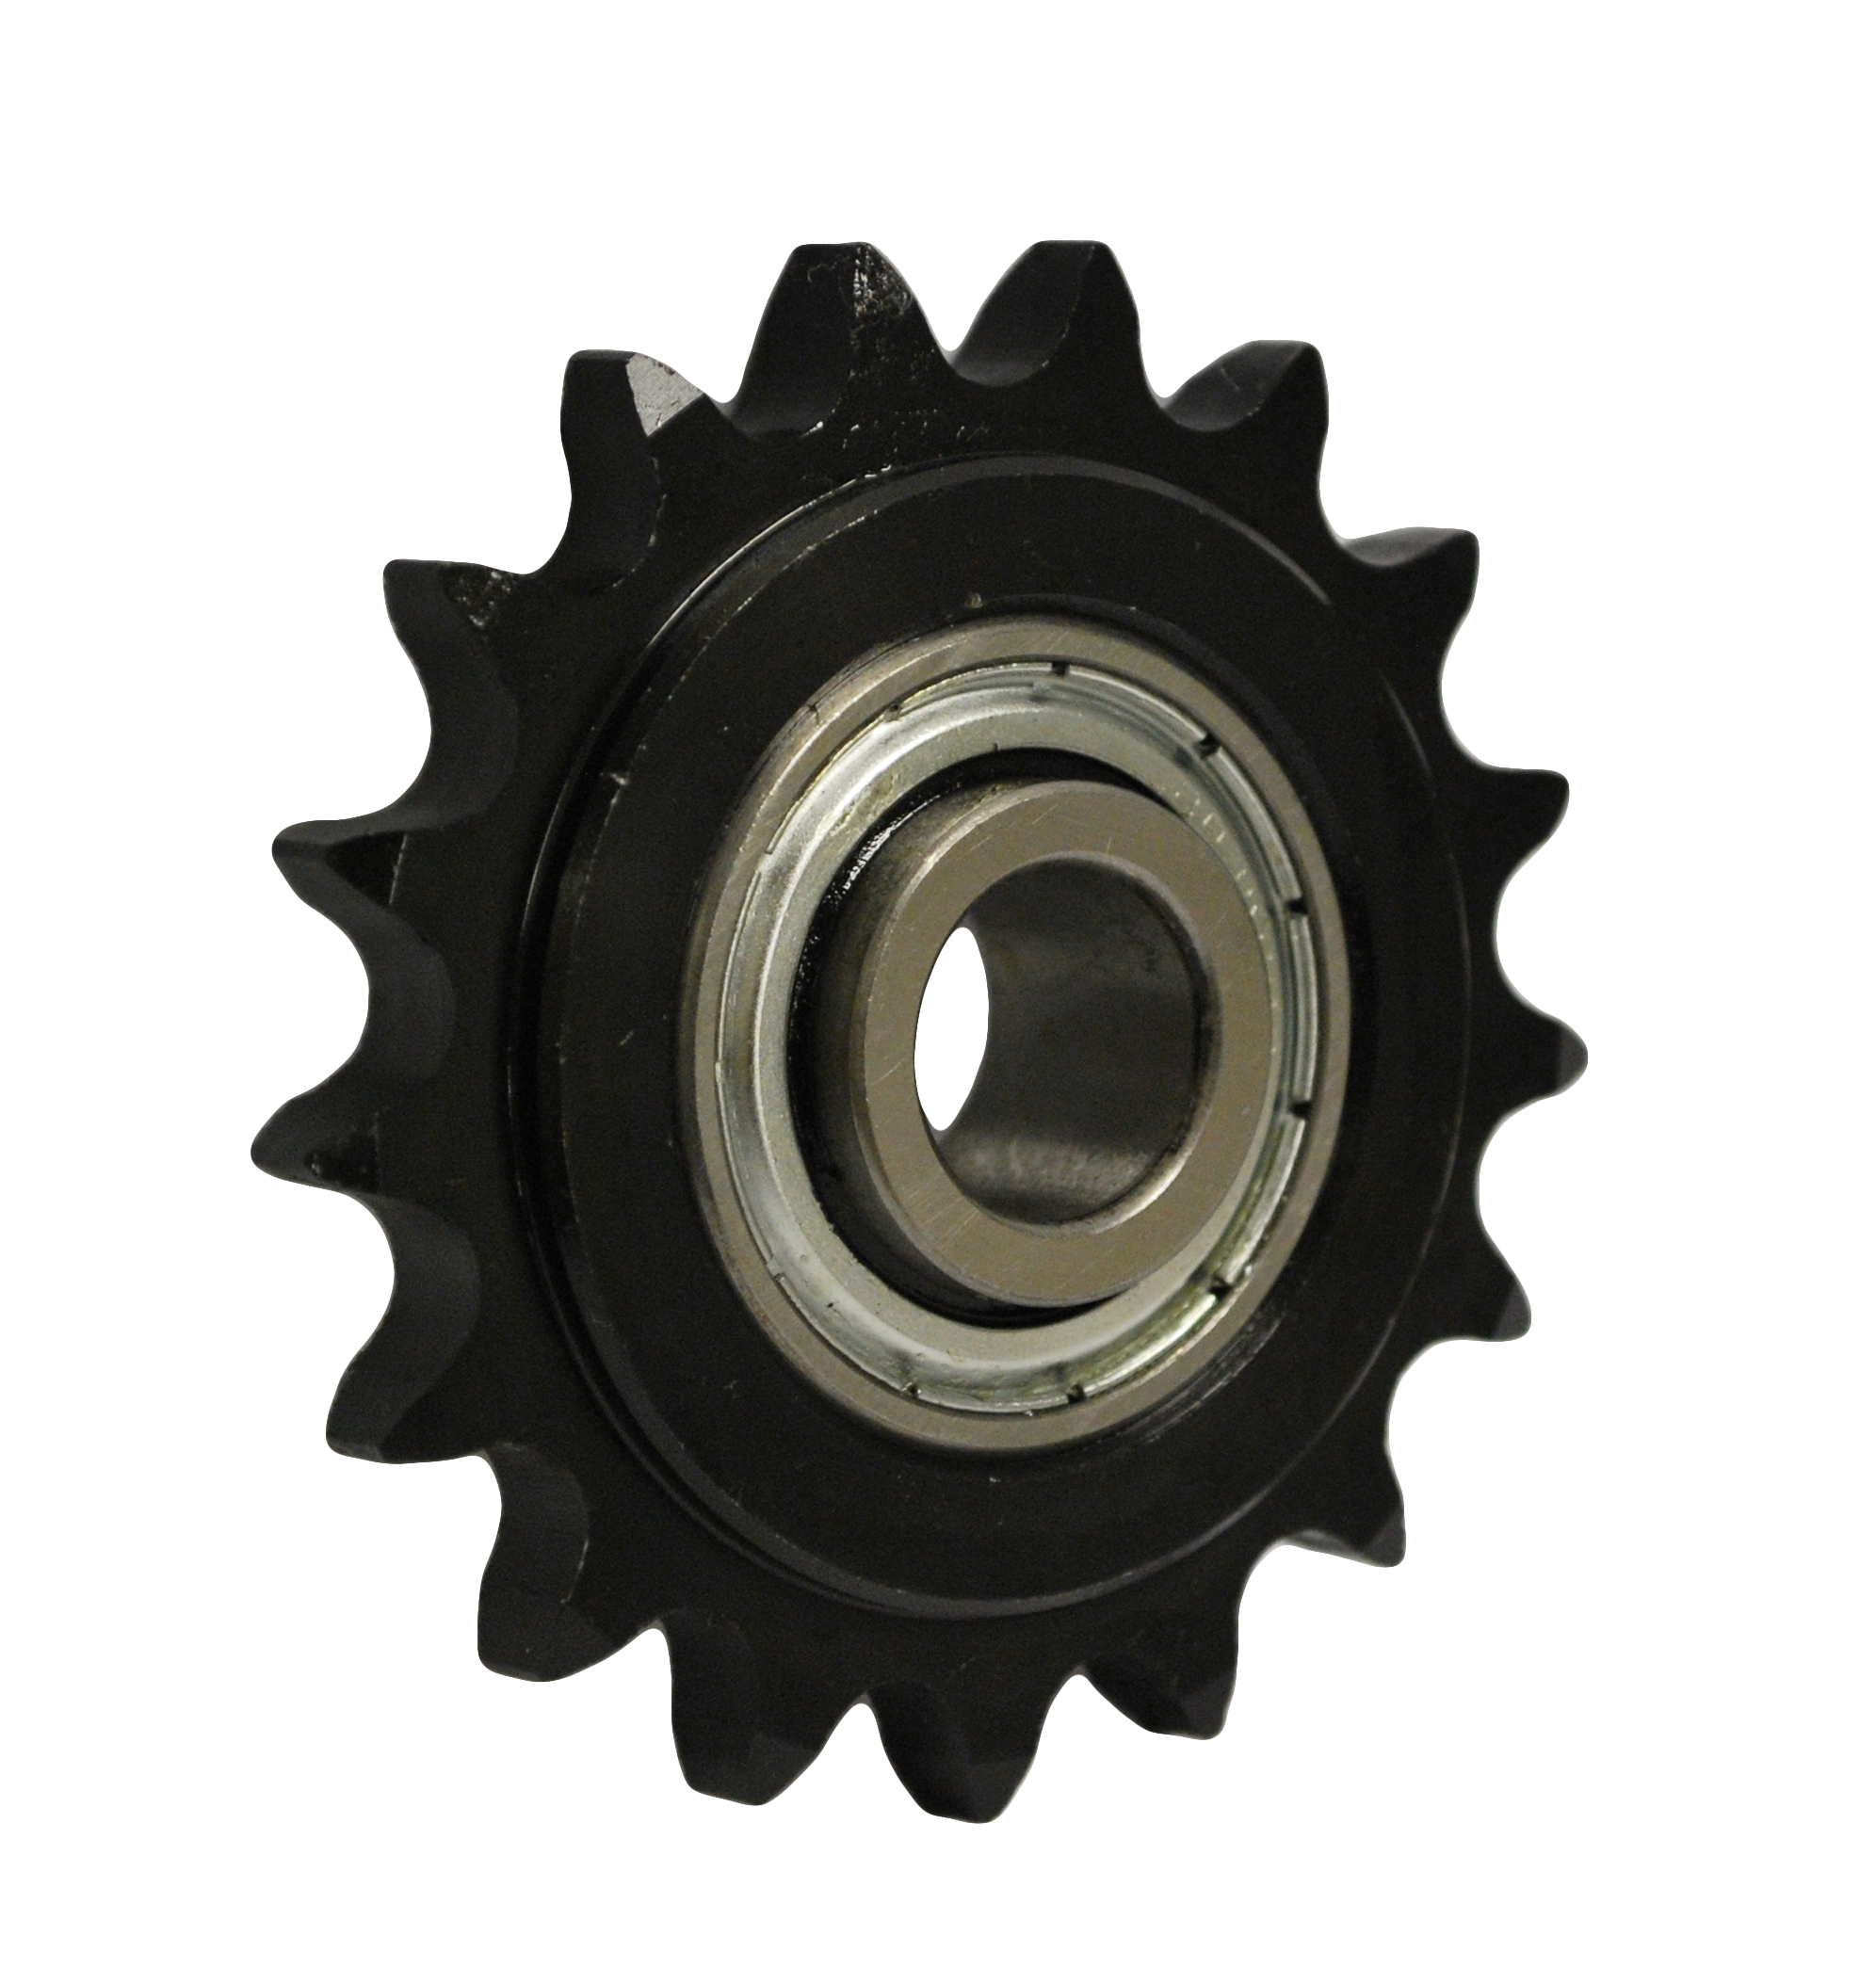 Ball Bearing Idler Sprocket Hardened Teeth On U S Tsubaki